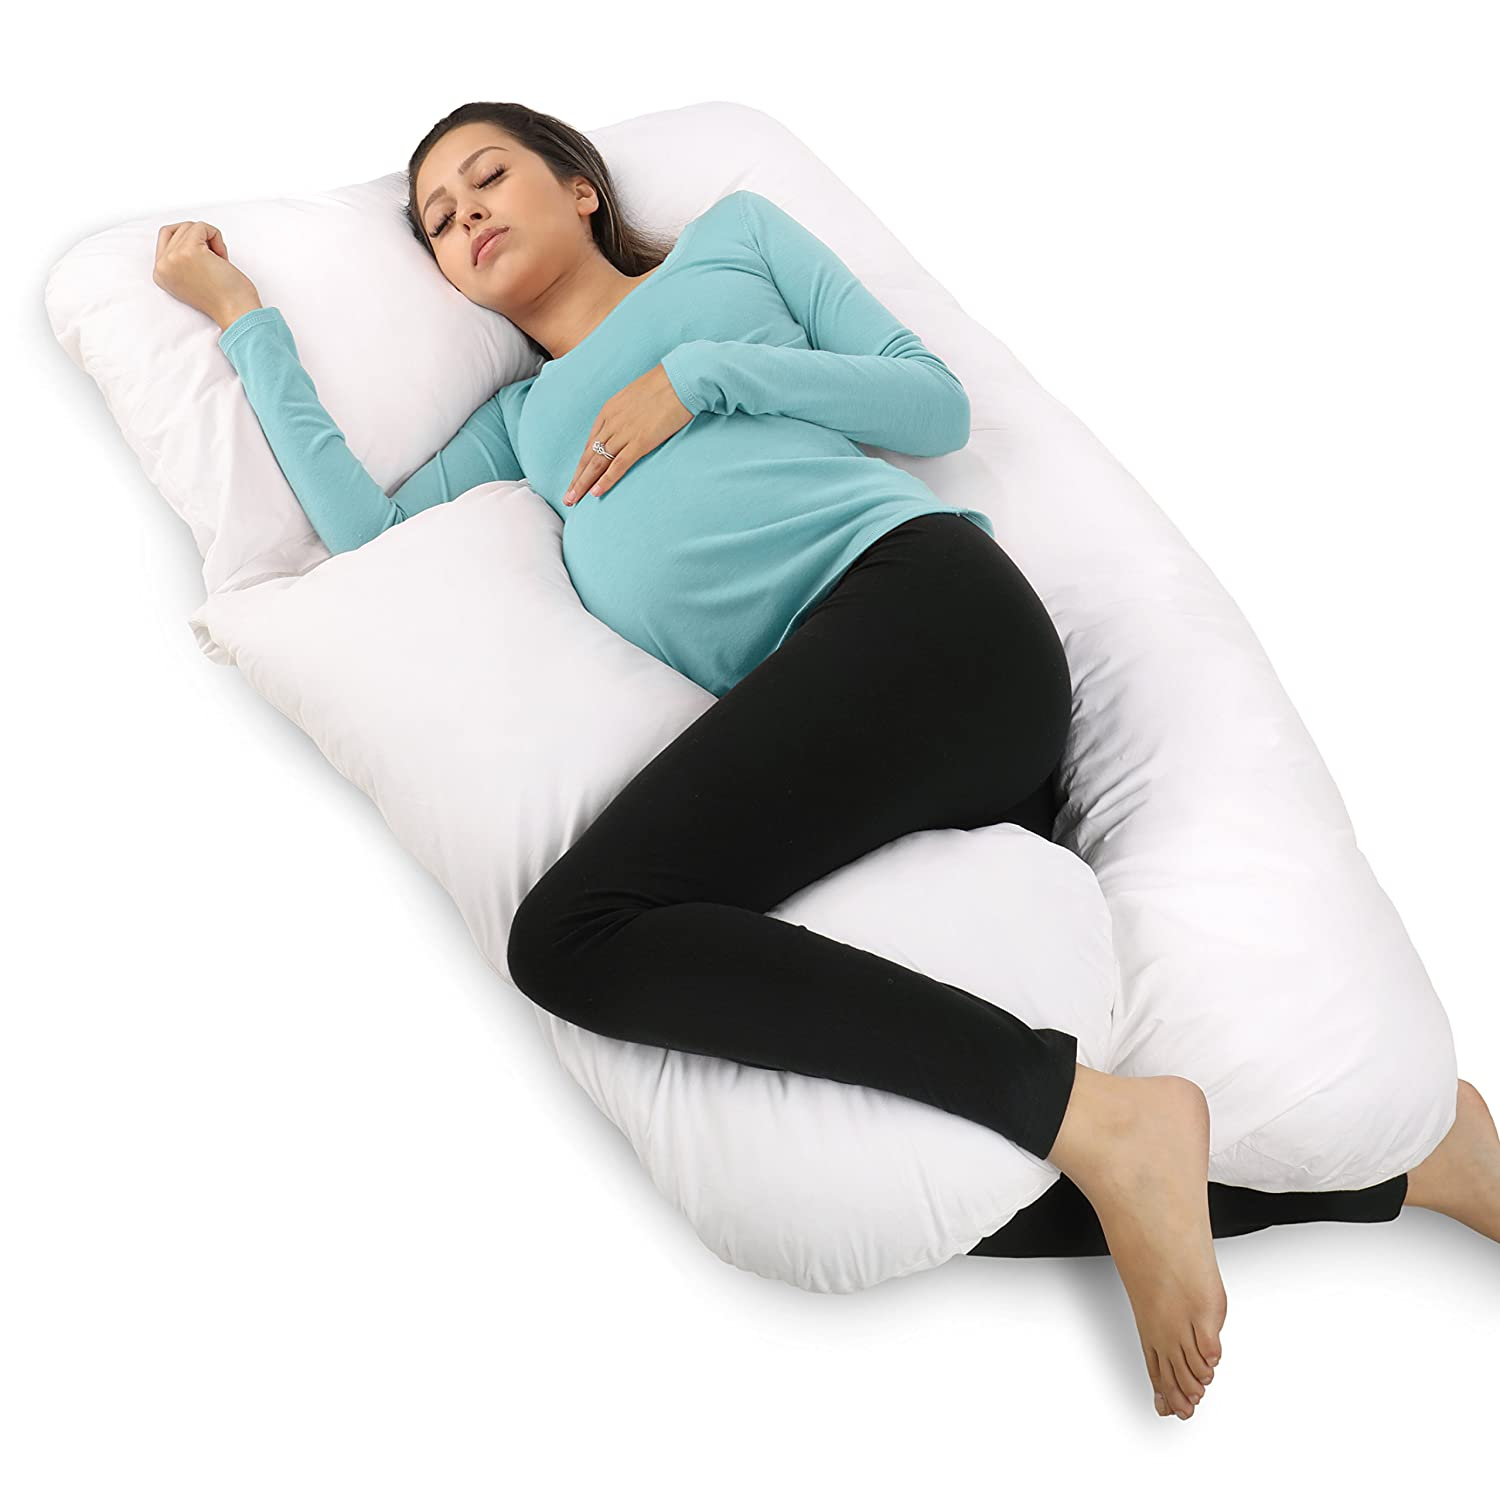 Pregnancy Pillow, U-Shape Full Body Pillow by PharMeDoc, Maternity Support Pillow